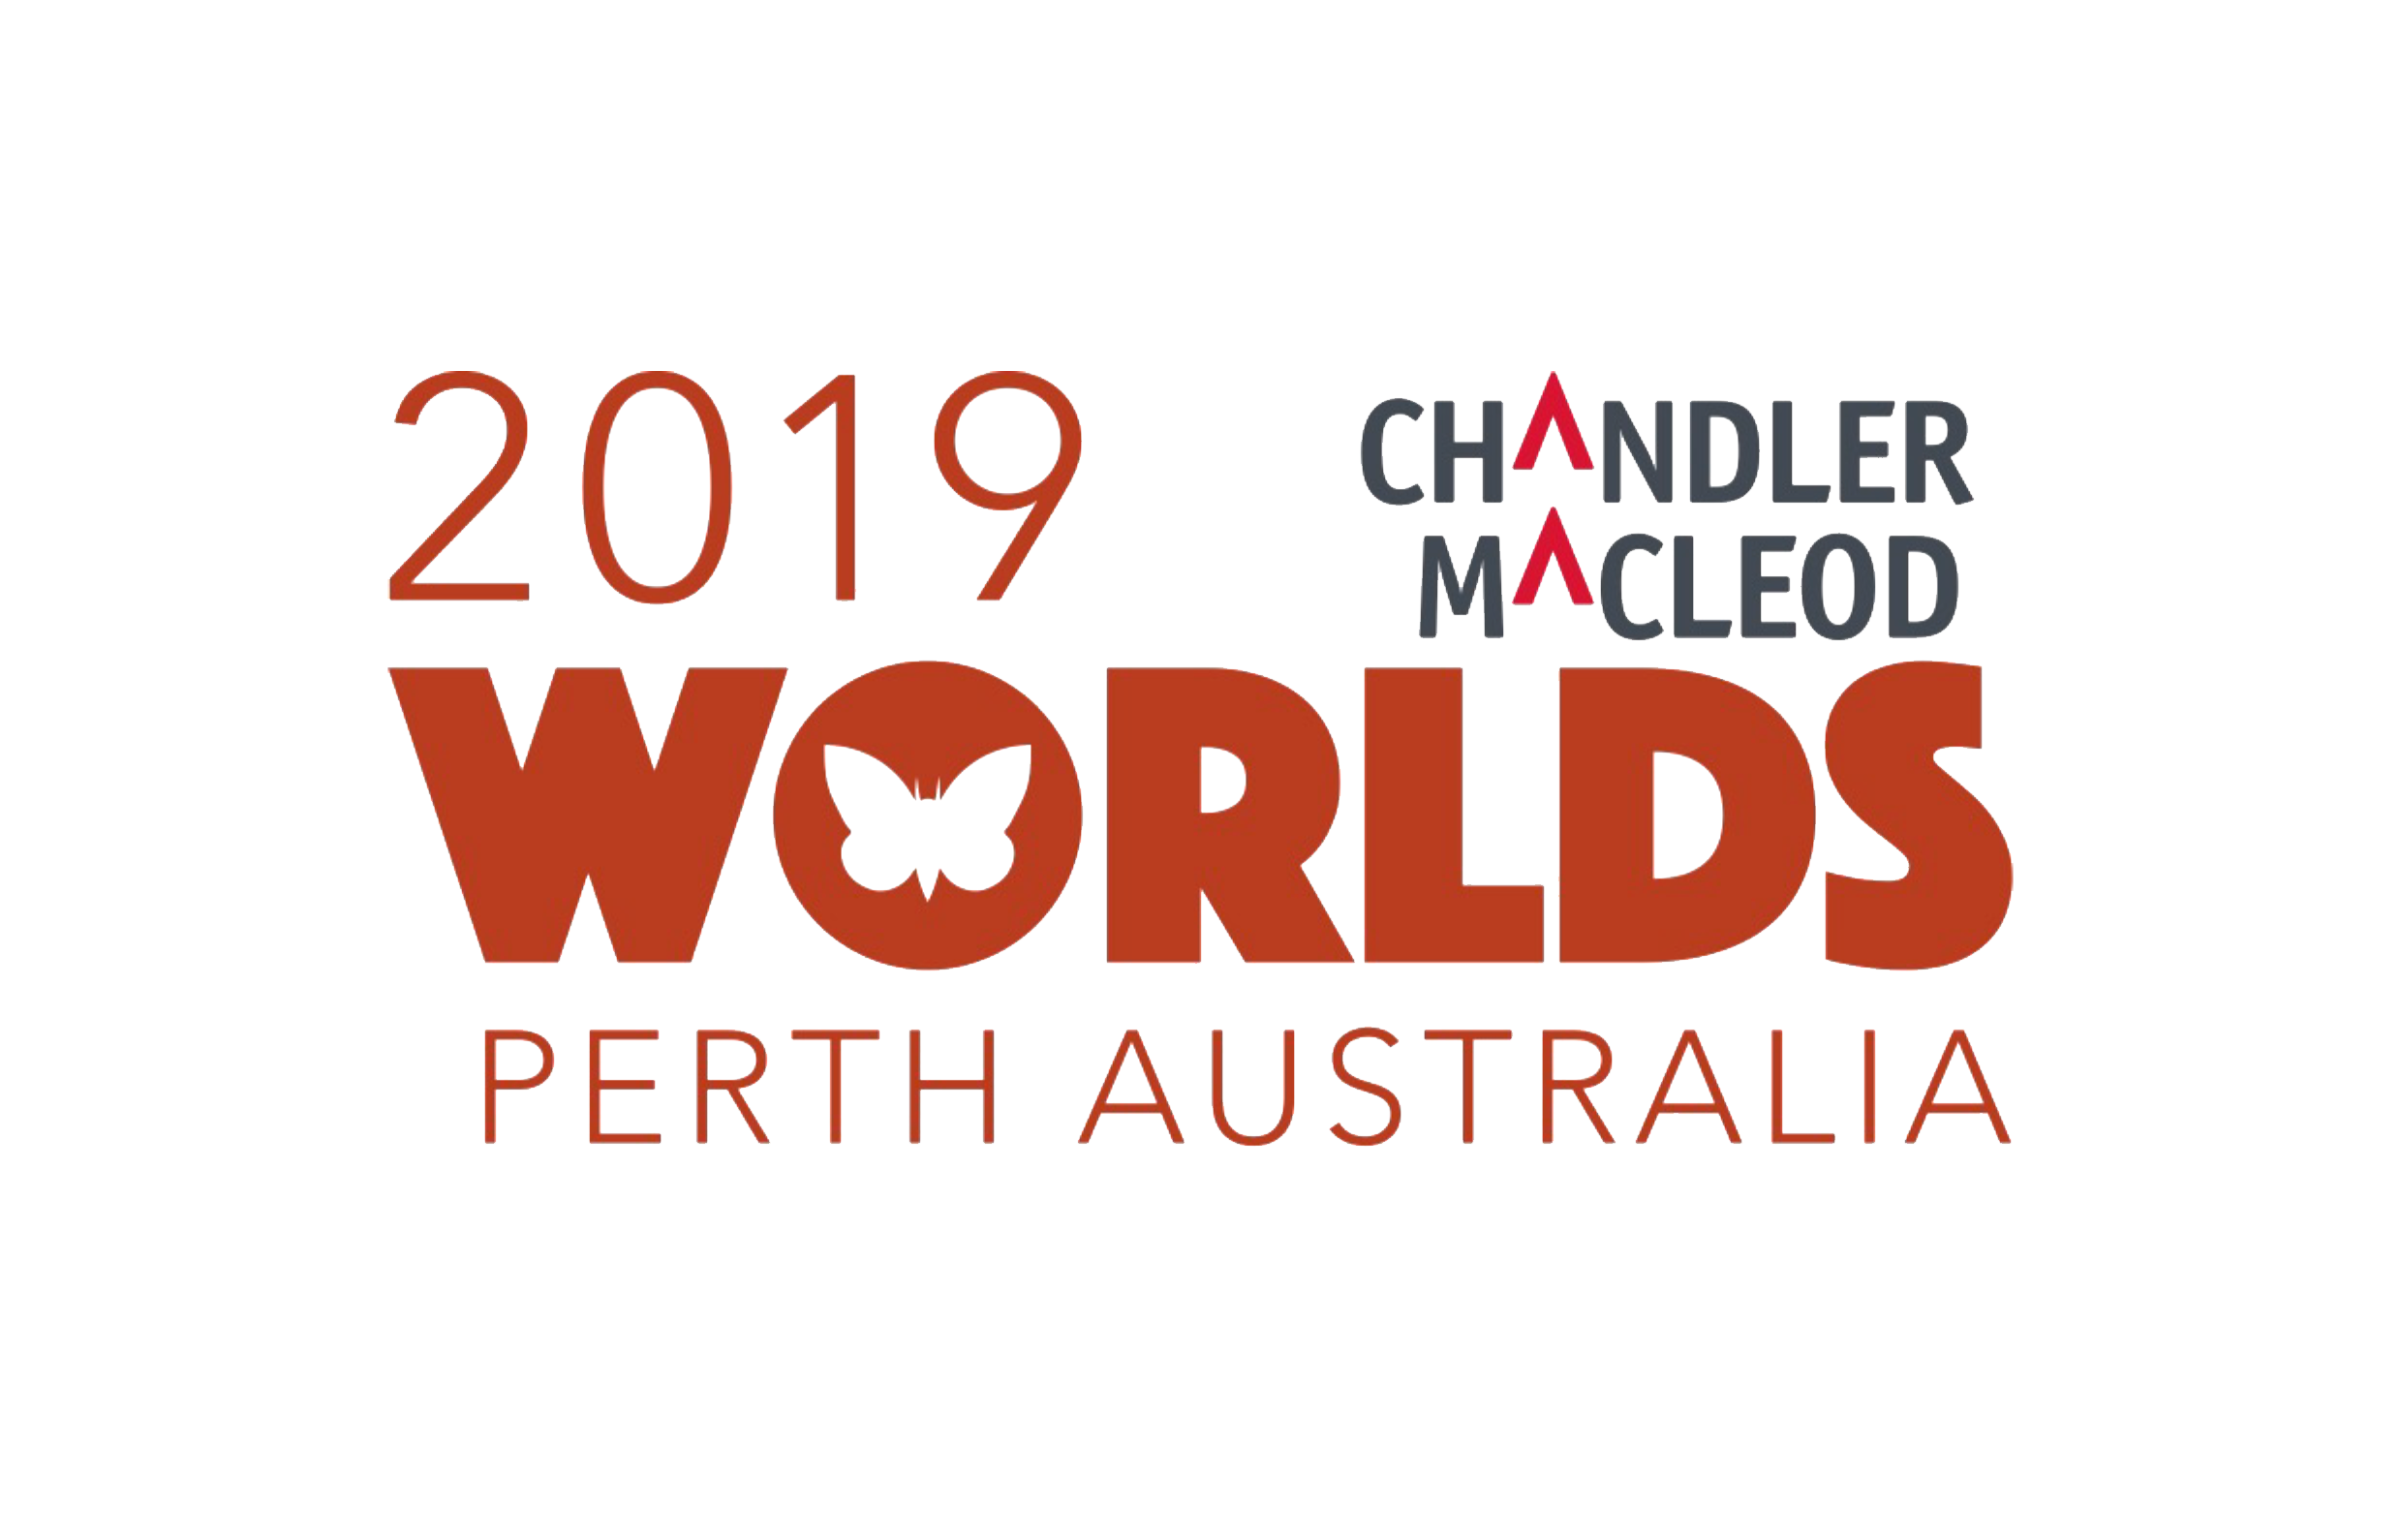 2019 Chandler Macleod Moth Worlds